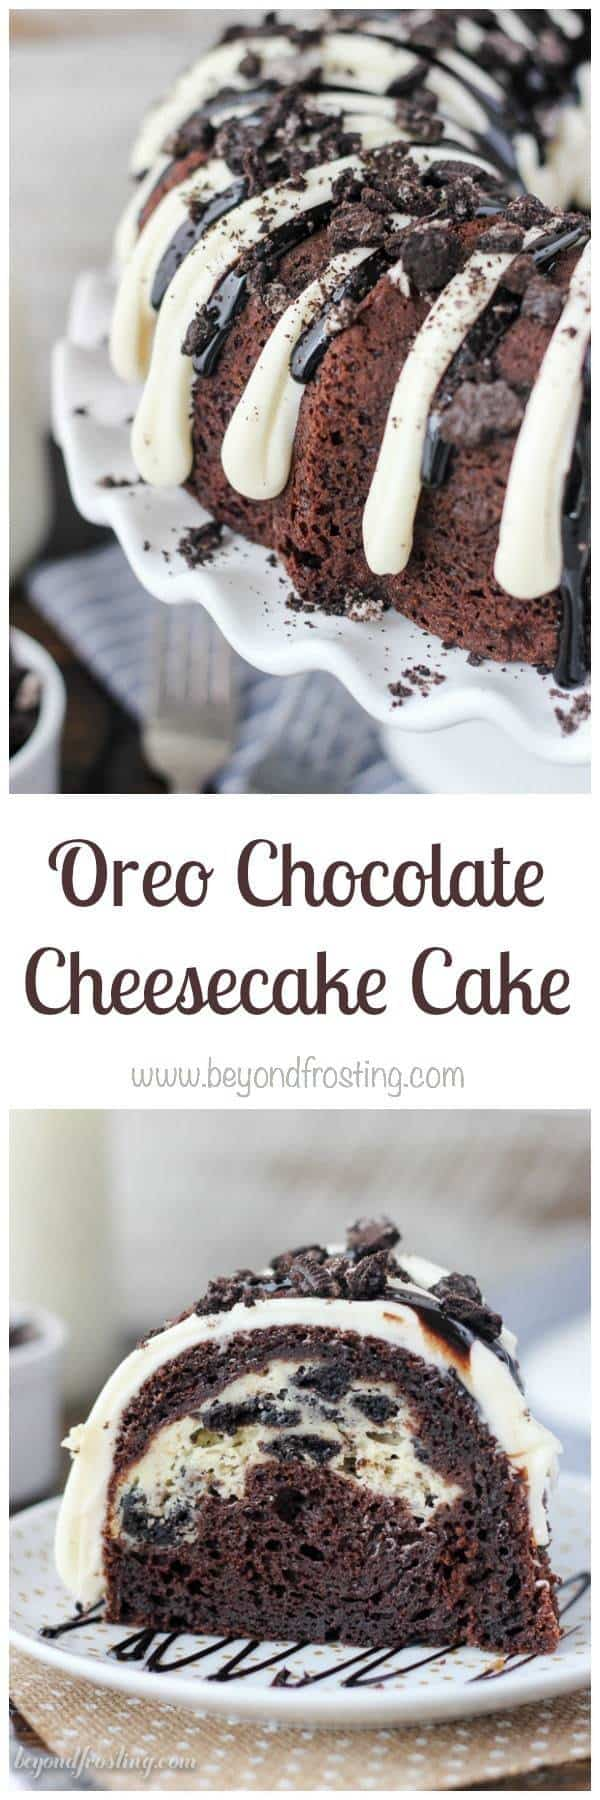 Oreo Chocolate Cheesecake Cake - Beyond Frosting